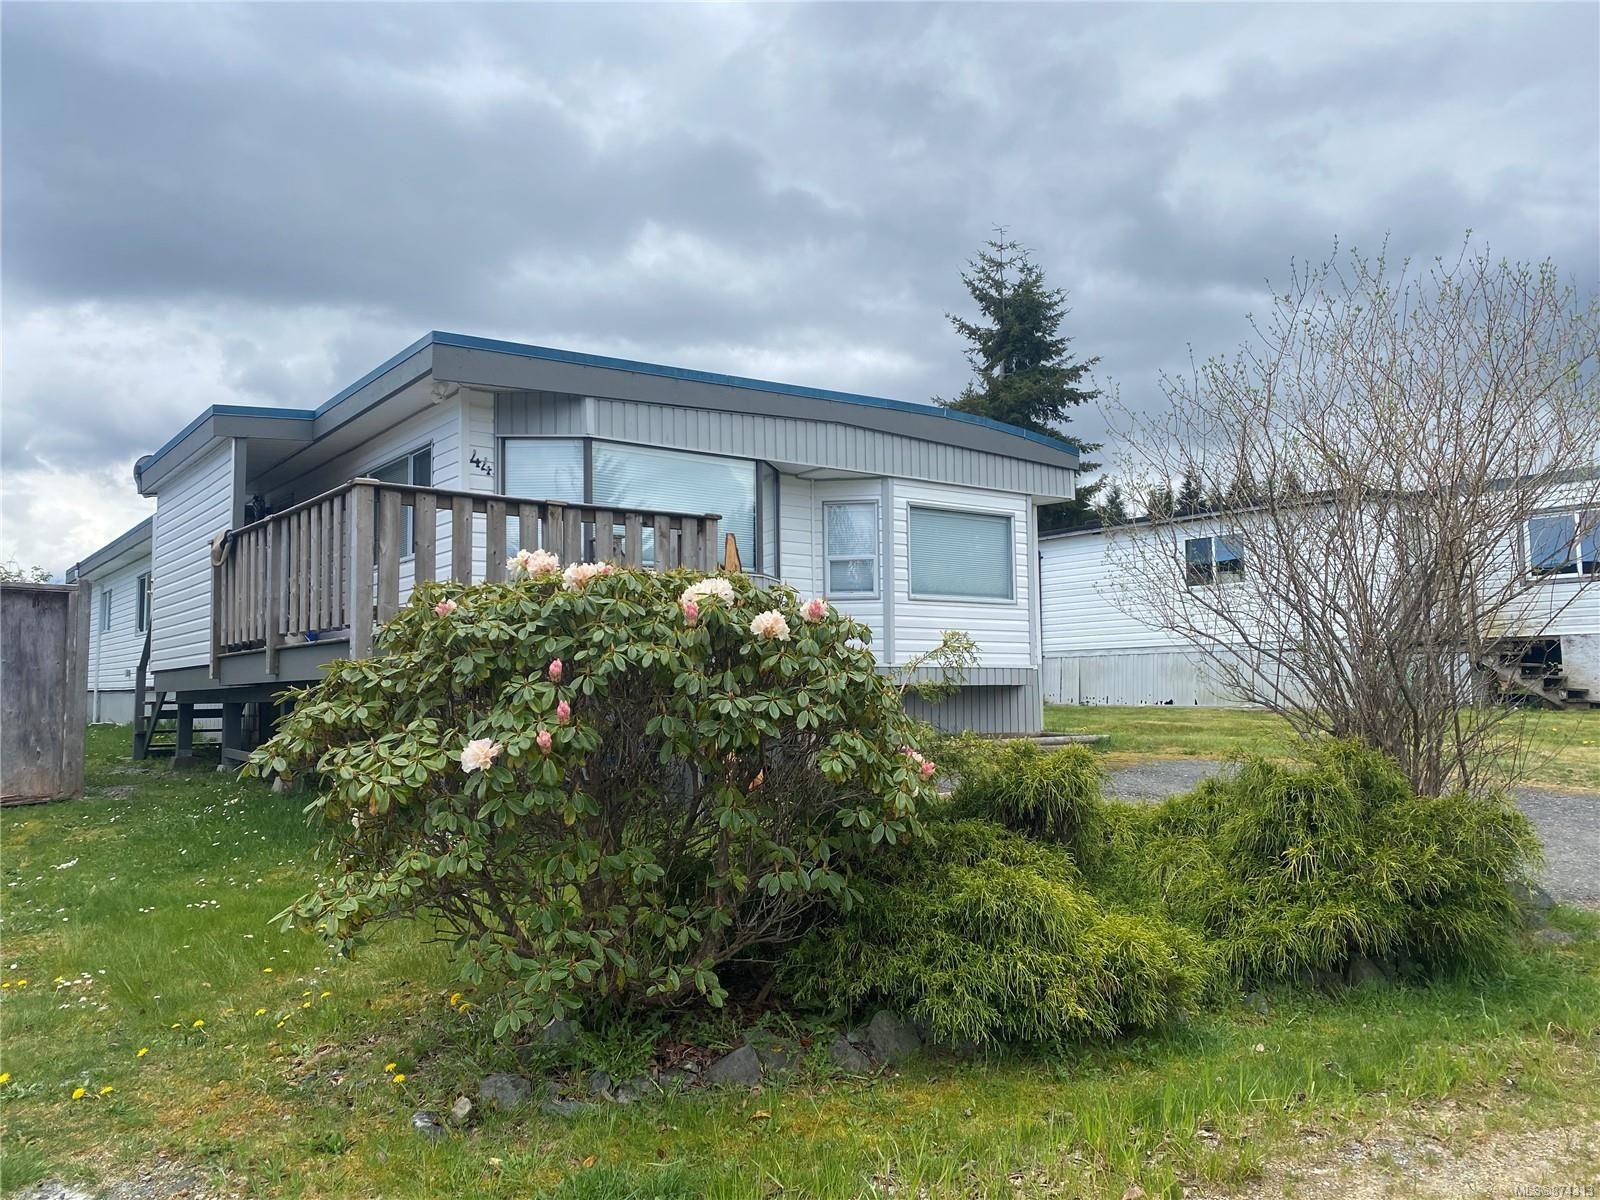 Main Photo: 44 7100 Highview Rd in : NI Port Hardy Manufactured Home for sale (North Island)  : MLS®# 874313